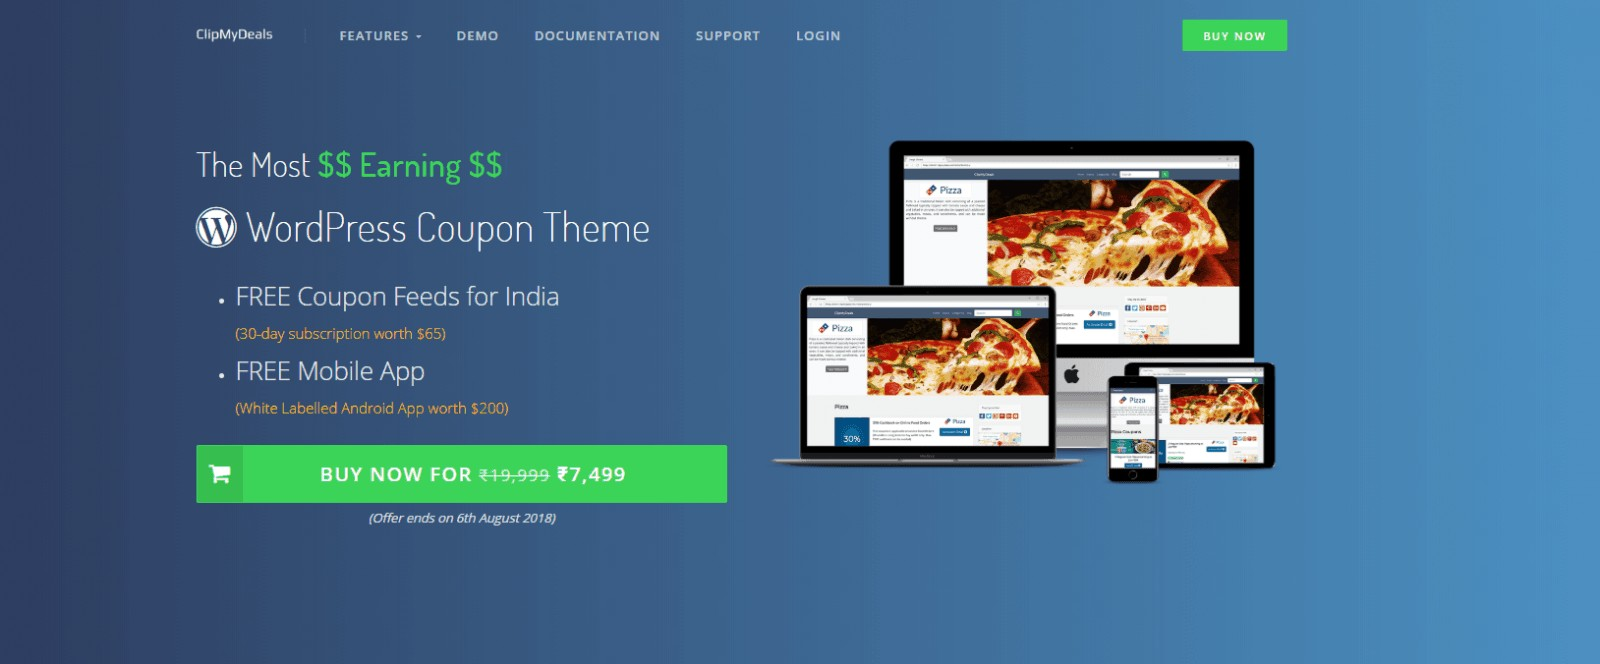 clipmydeals wordpress coupon theme-bloggersutra